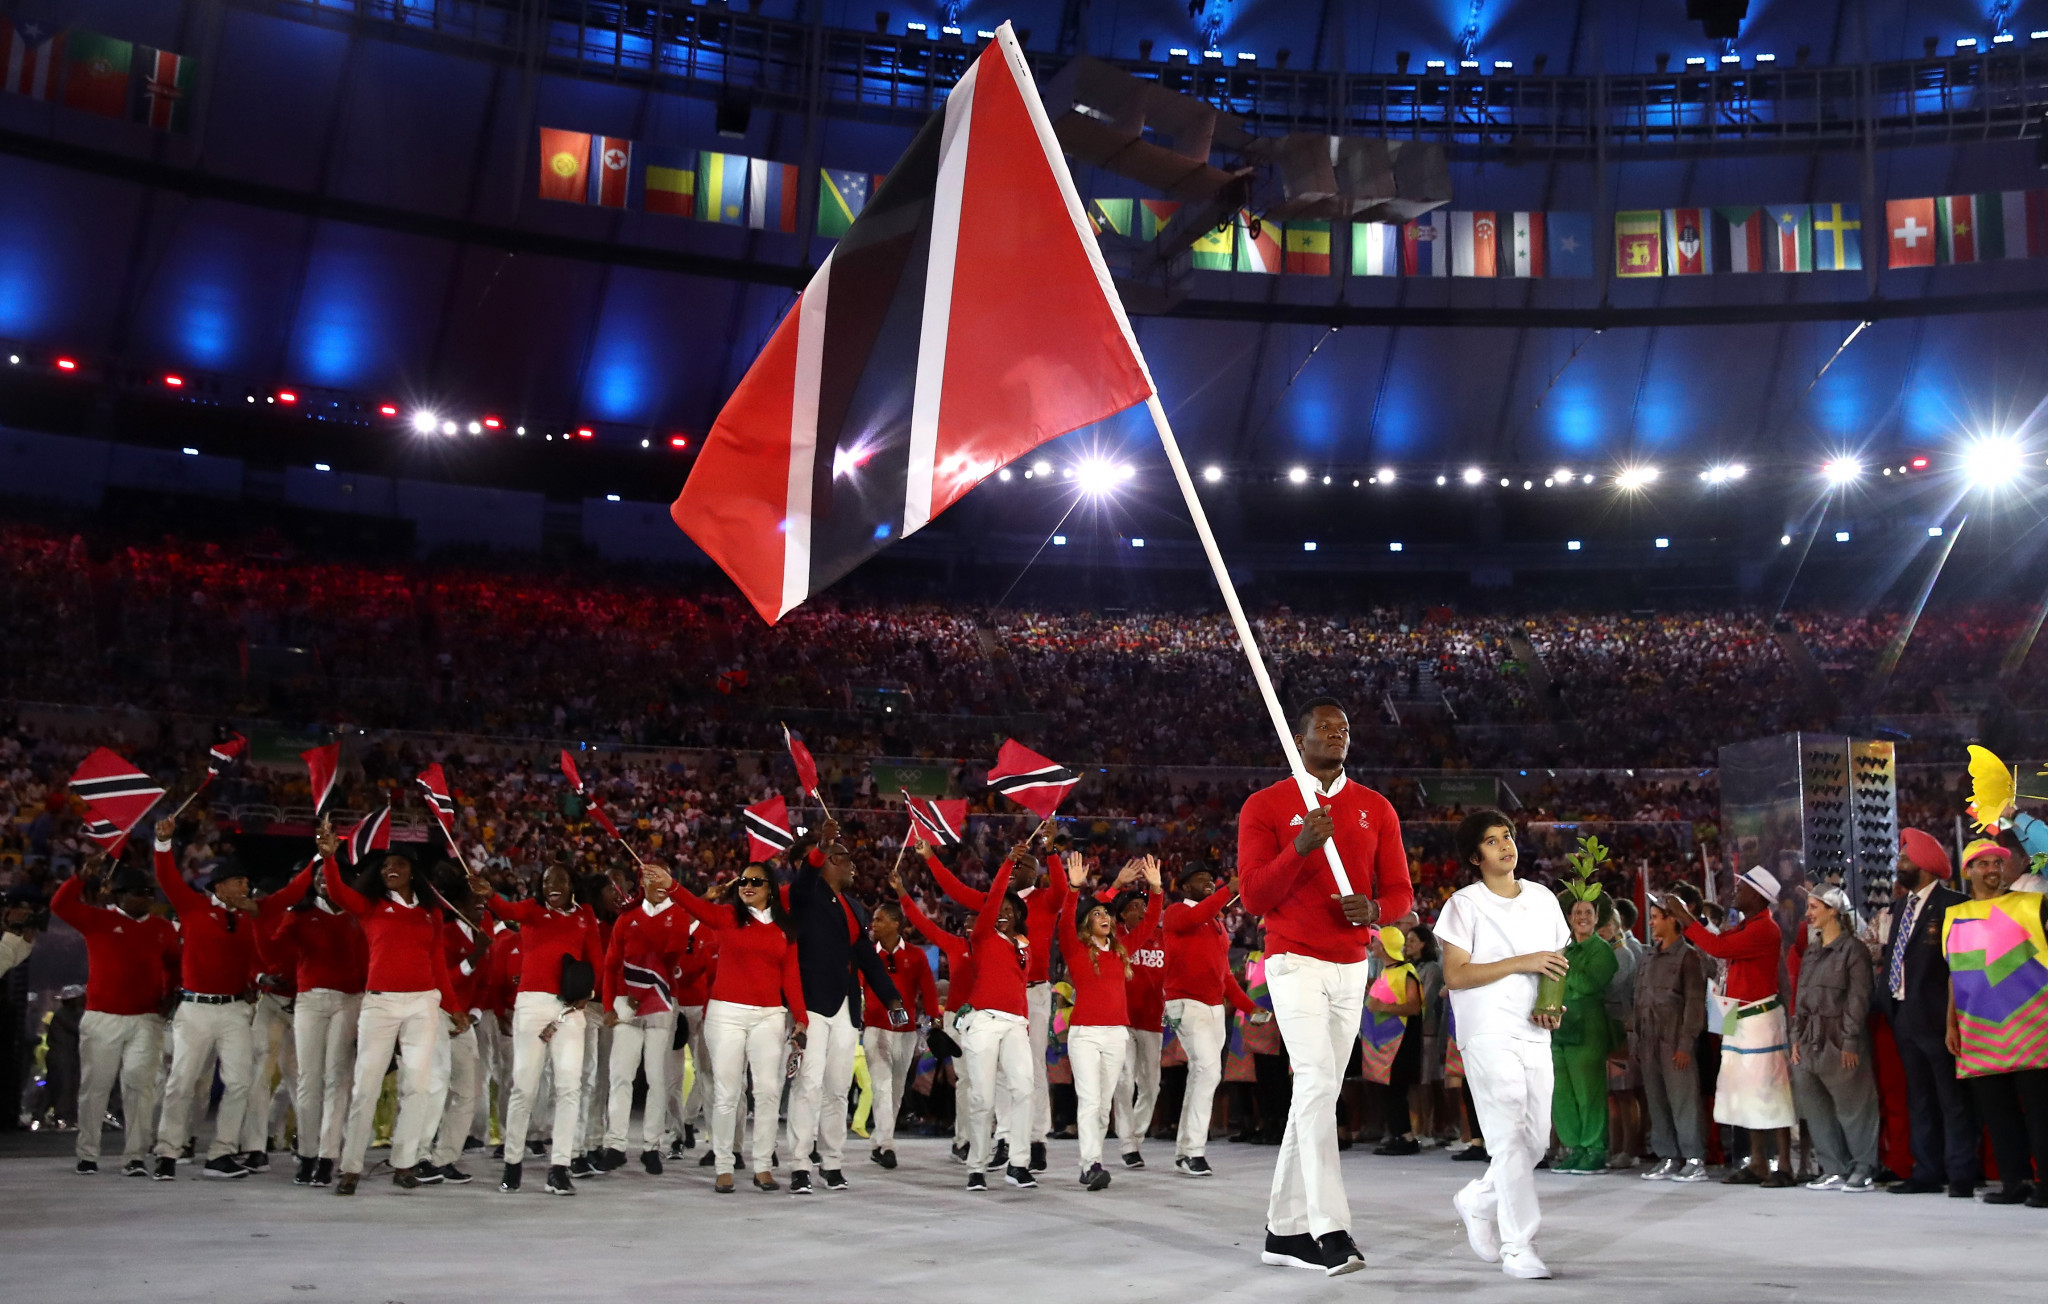 Trinidad and Tobago's Olympic team receive financial boost ahead of Tokyo 2020